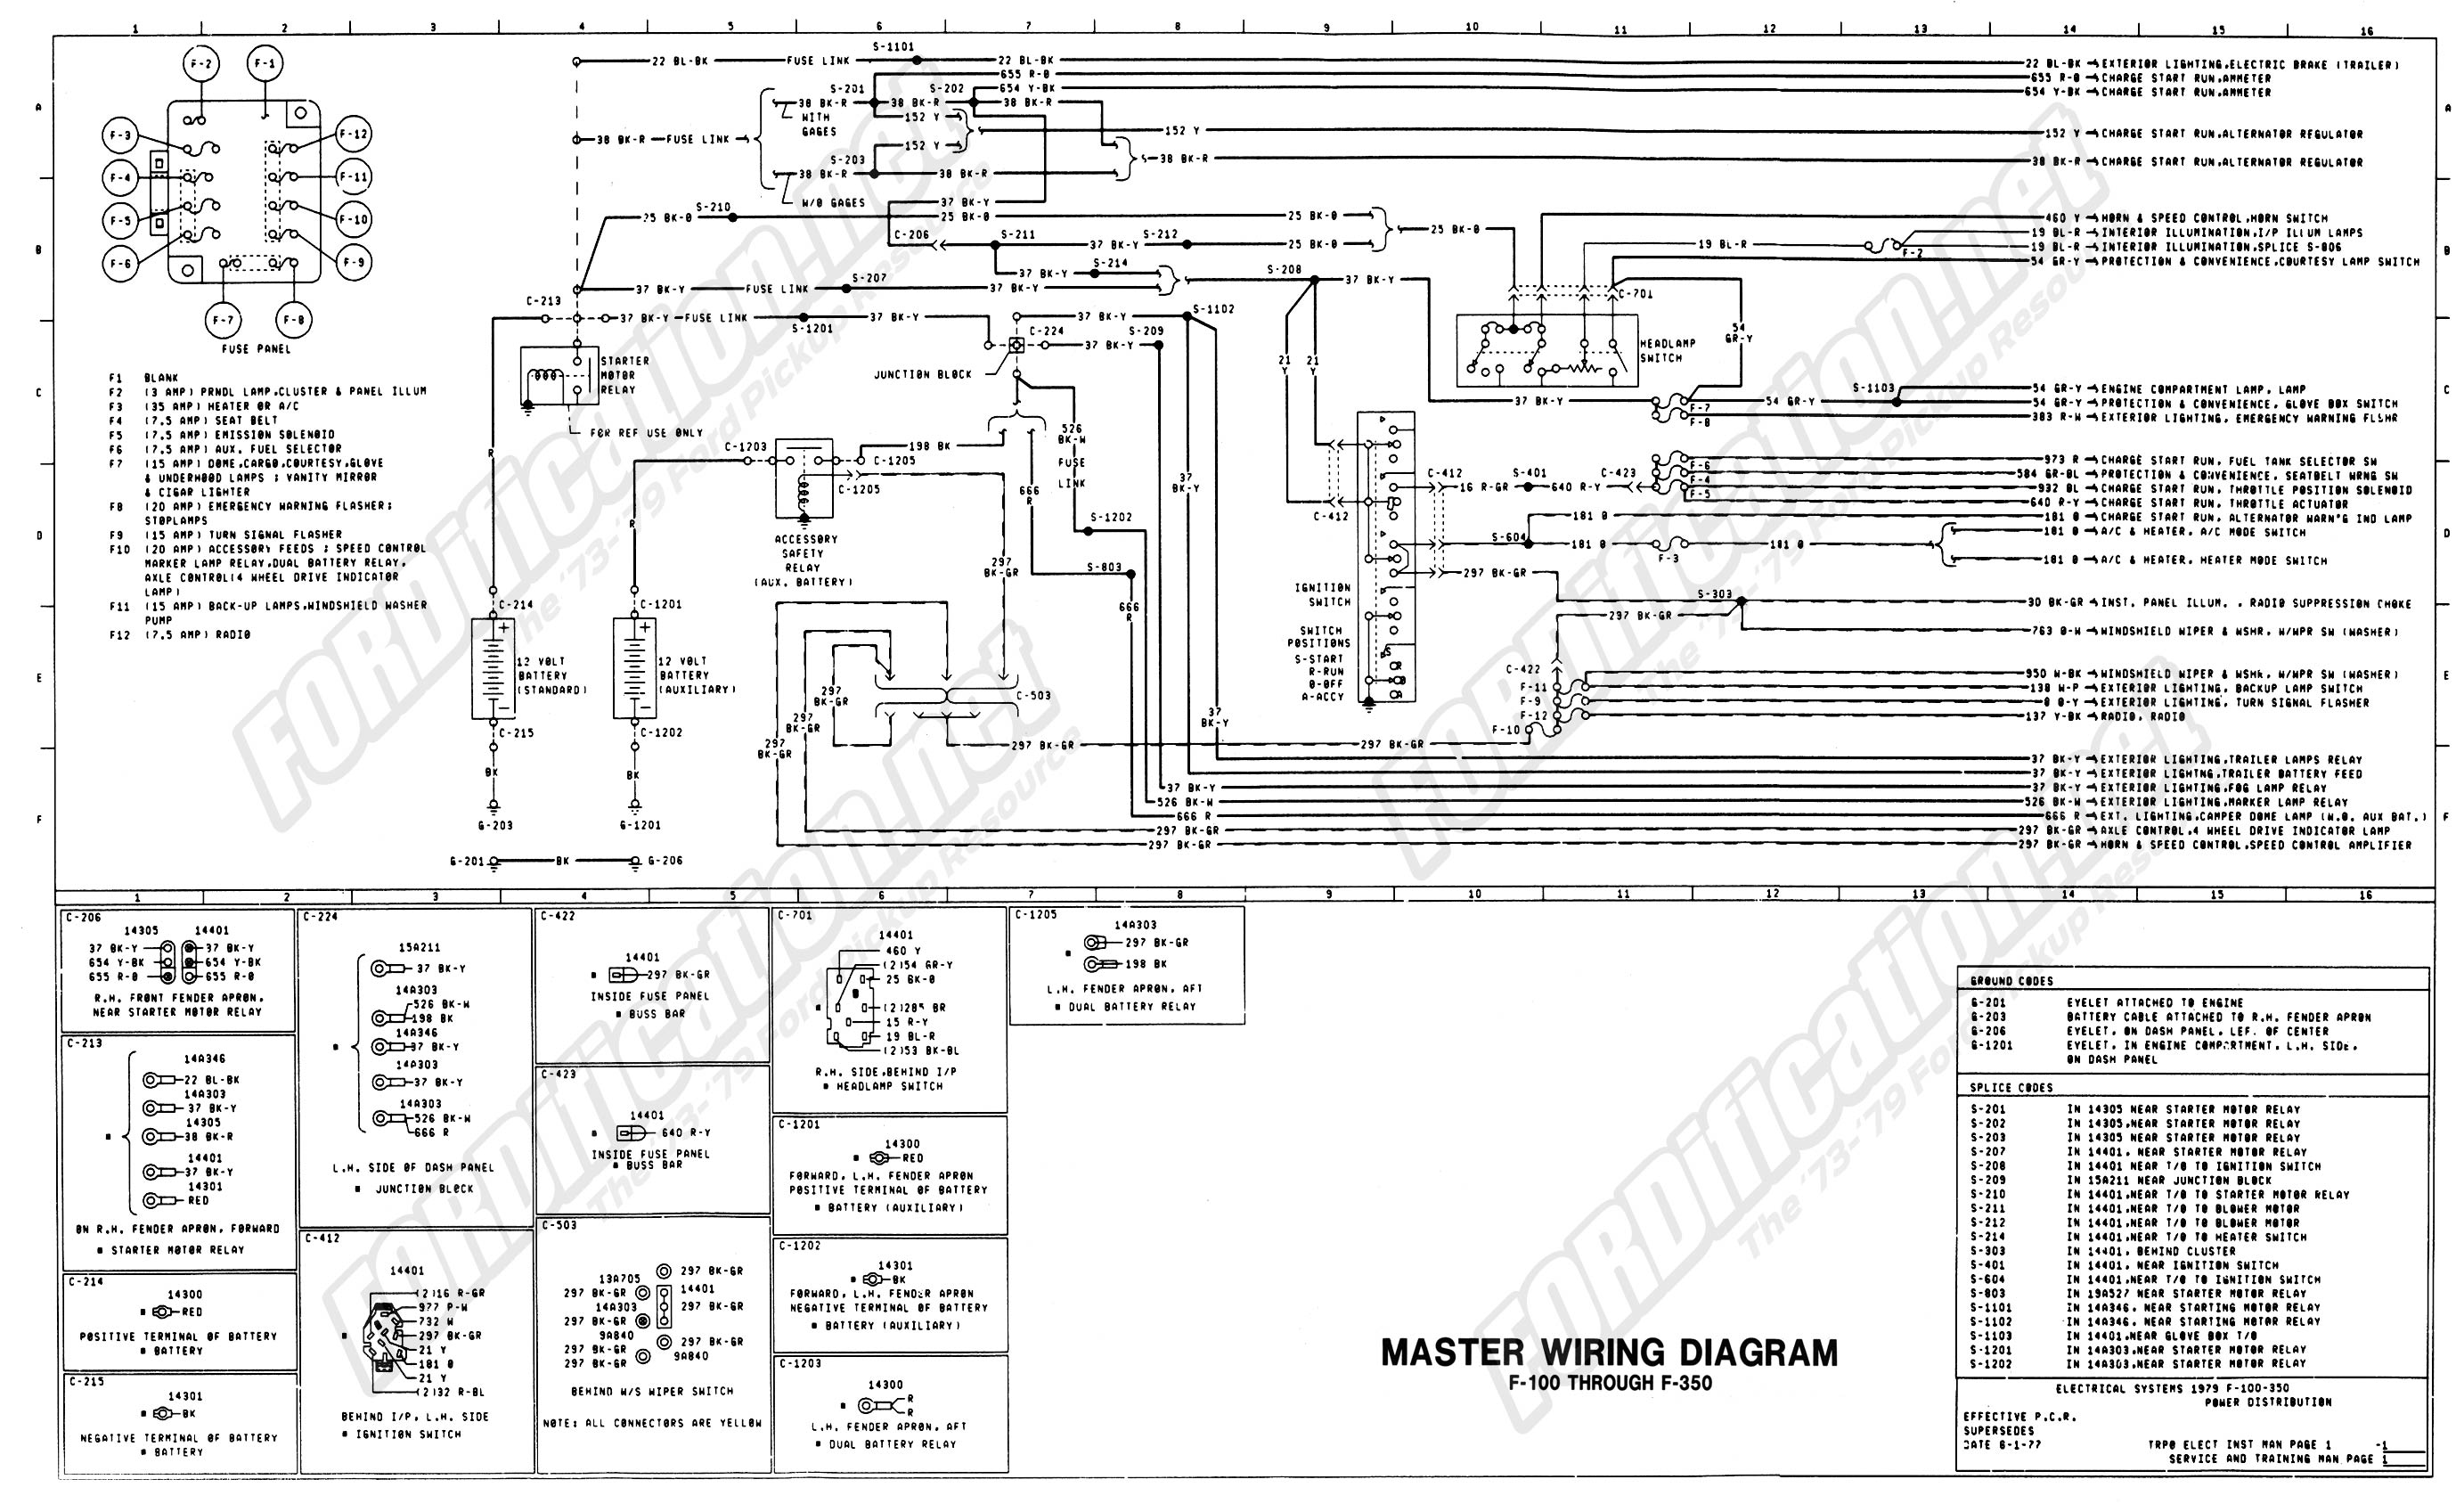 73 Ford Truck Wiring Diagram from www.fordification.net